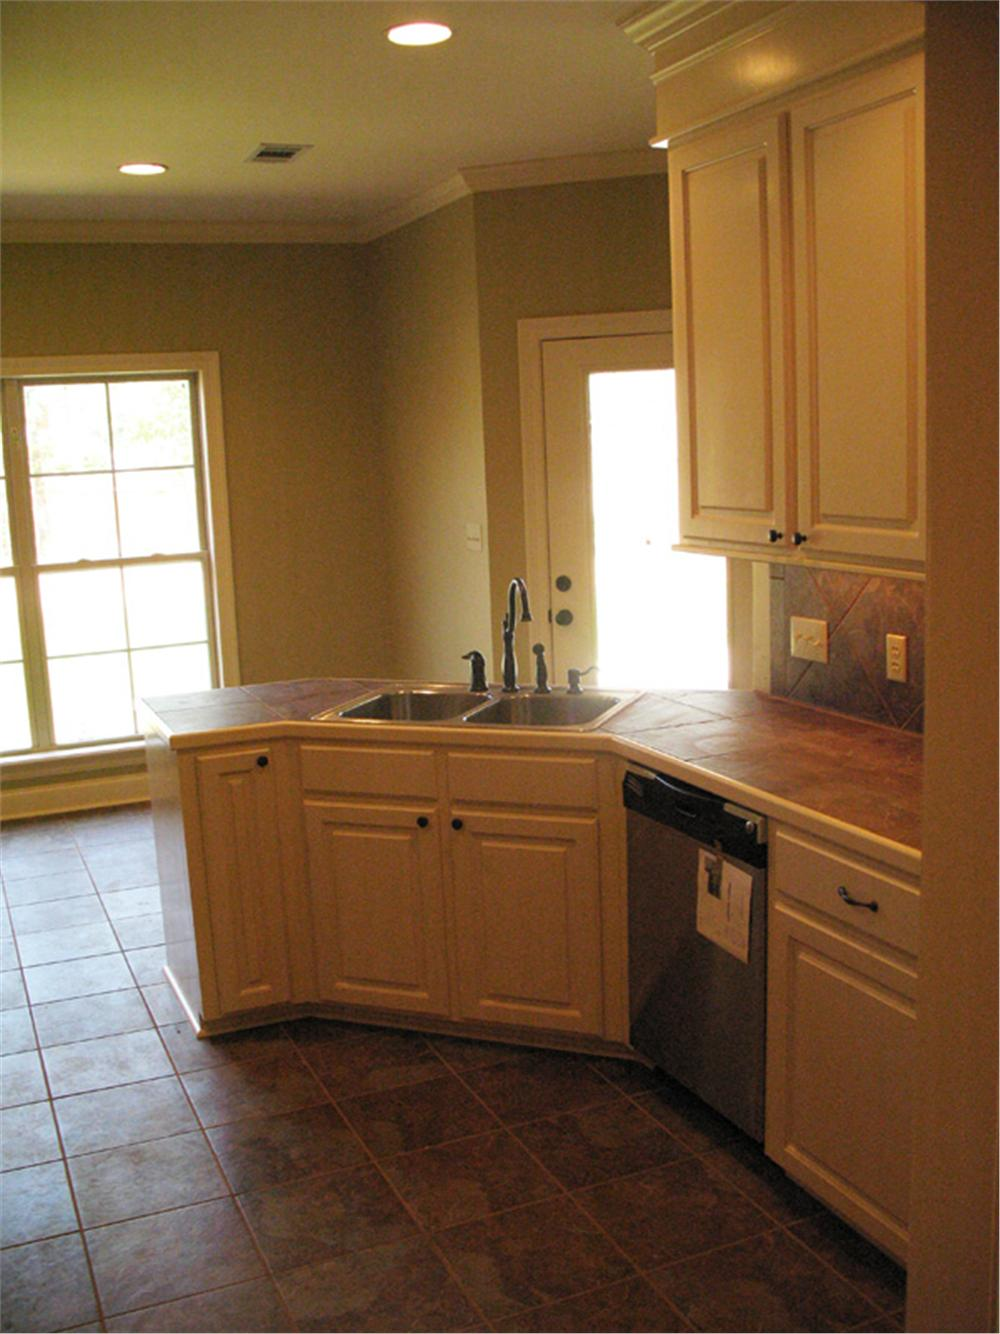 141-1244 house plan kitchen view 2